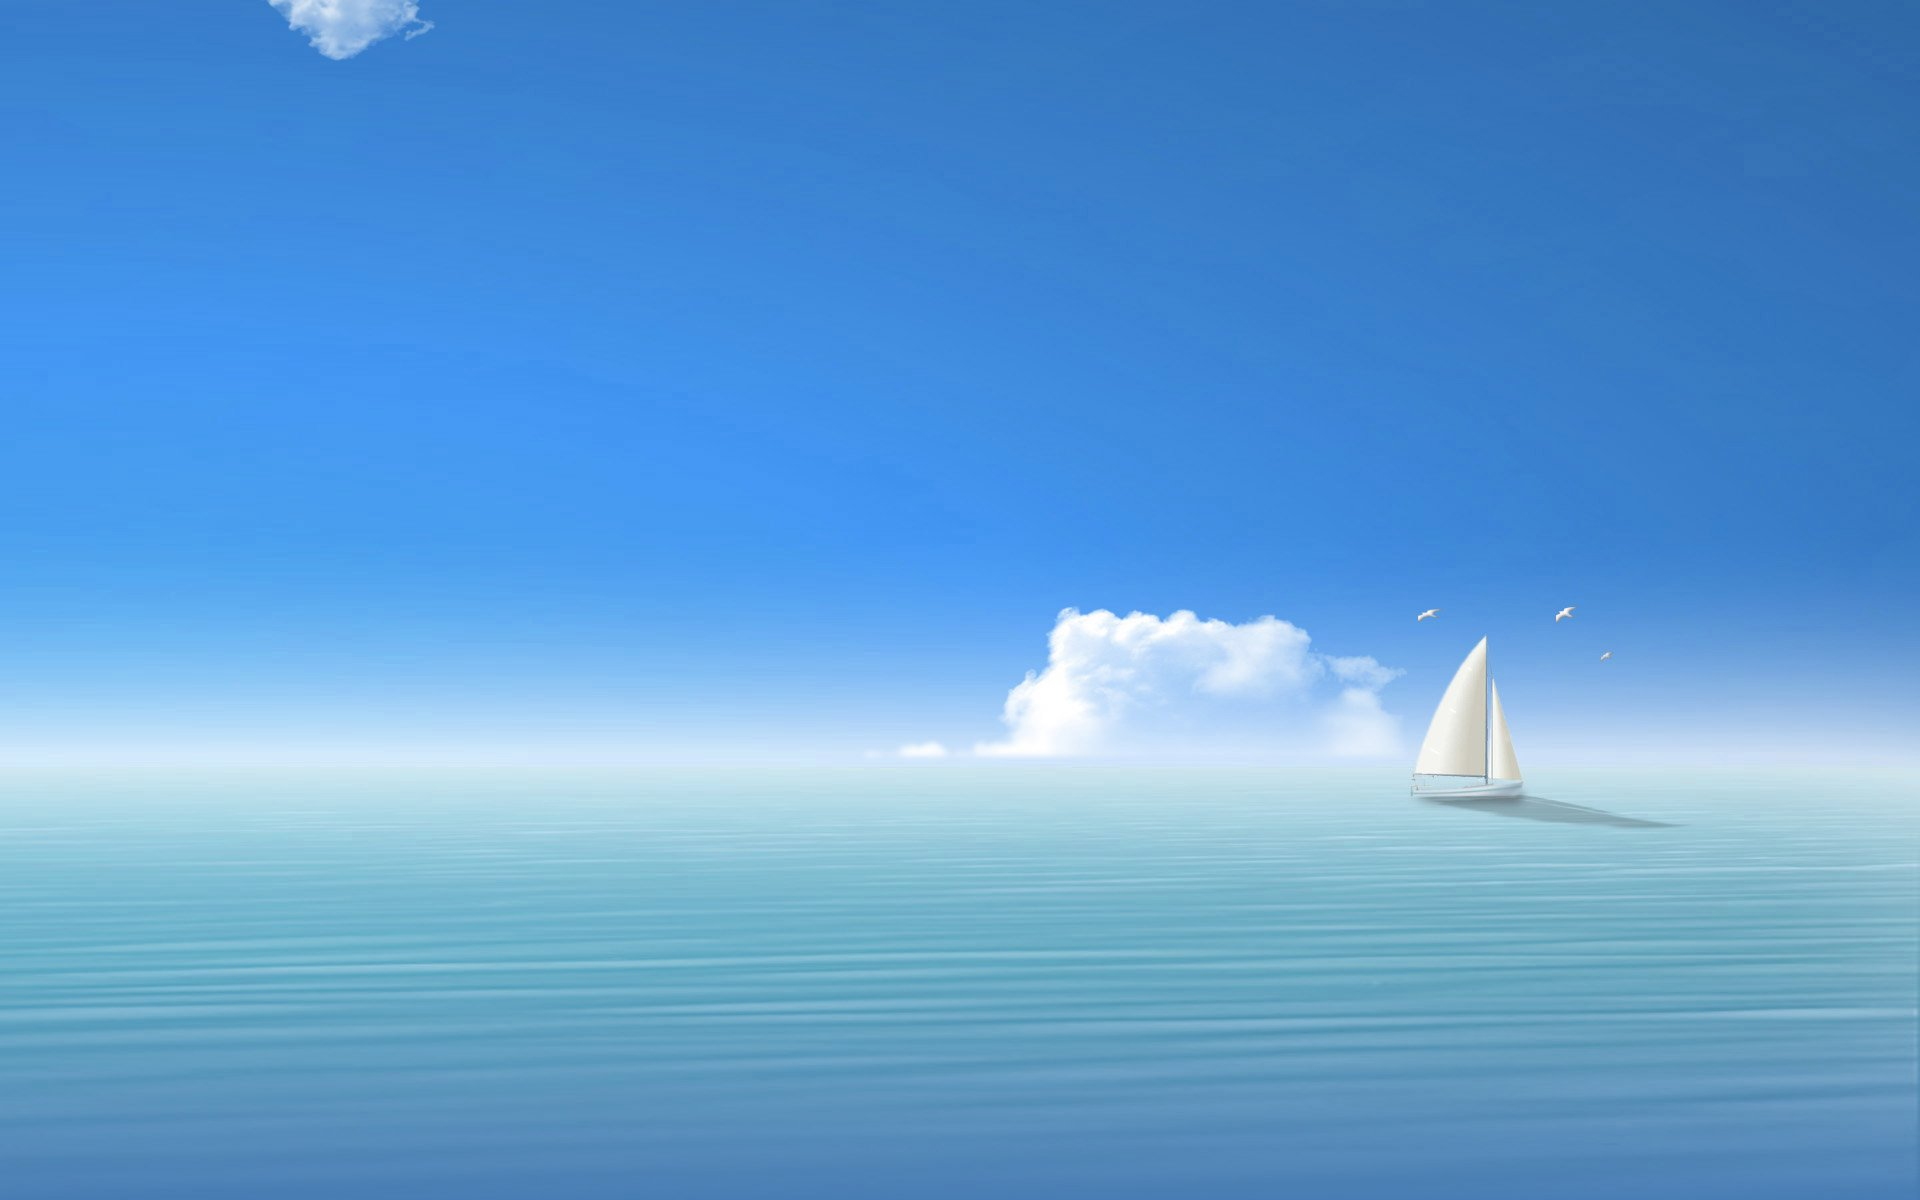 ocean hd wallpaper android which is under the ocean wallpapers 1920x1200